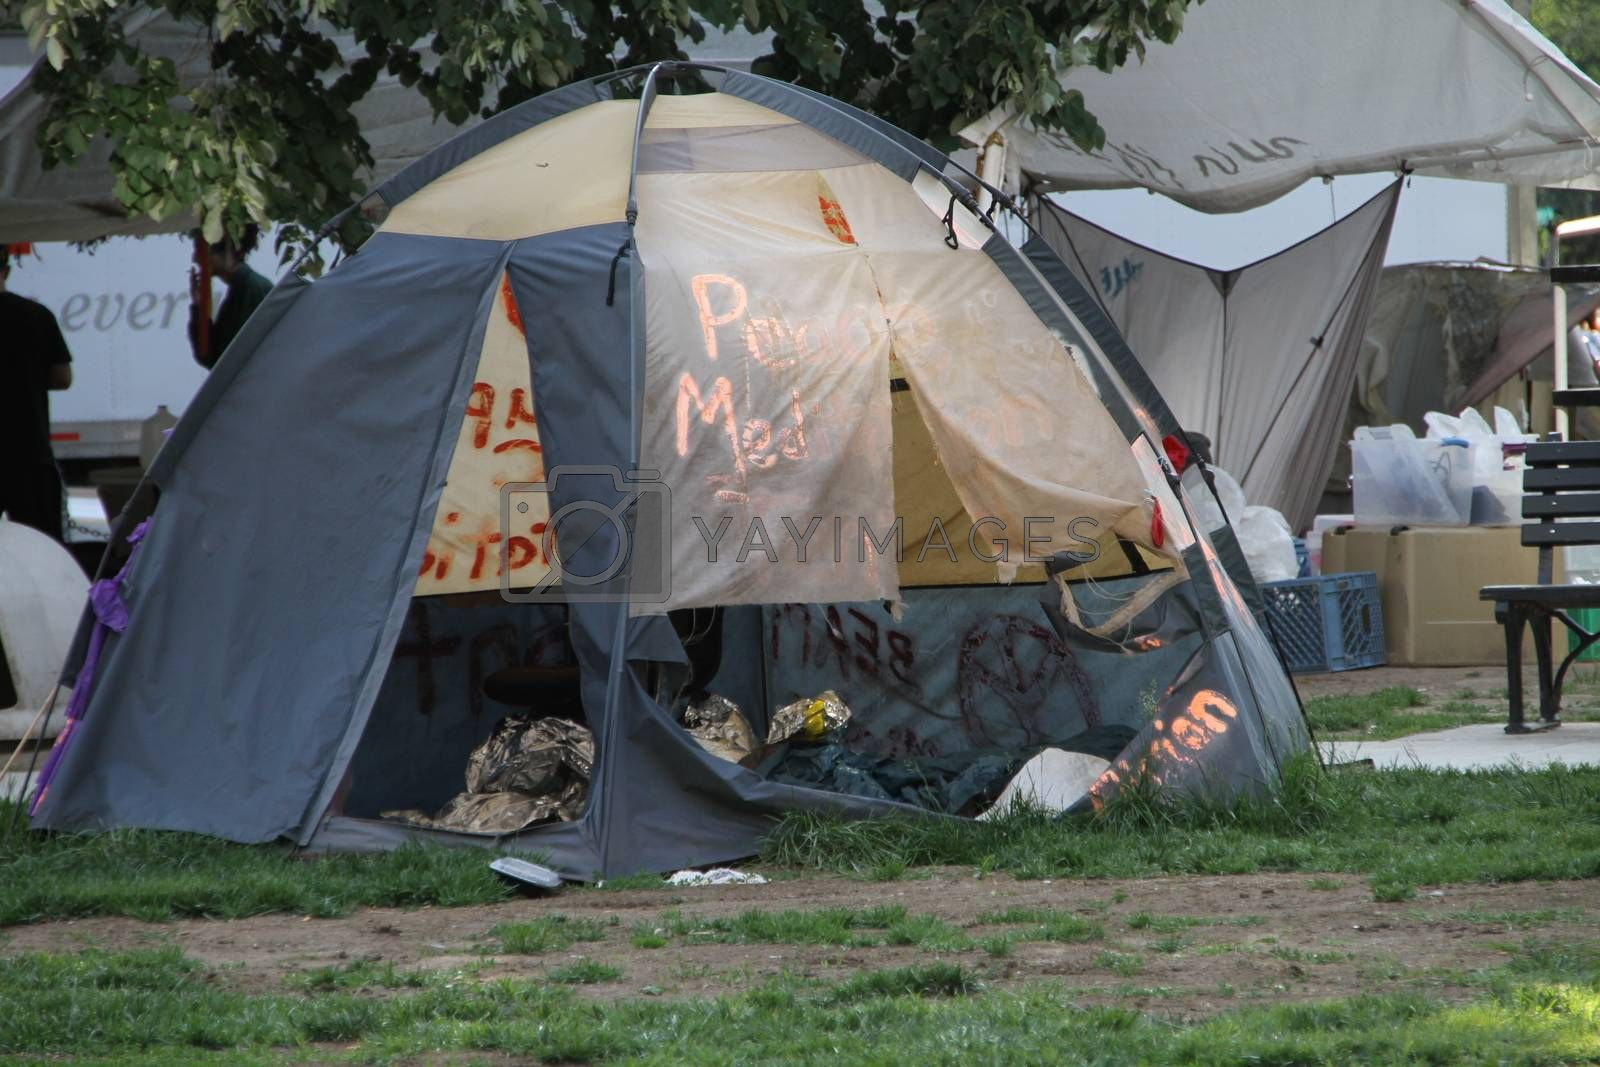 The camp of the Occupy movement in Washington by olegkozyrev